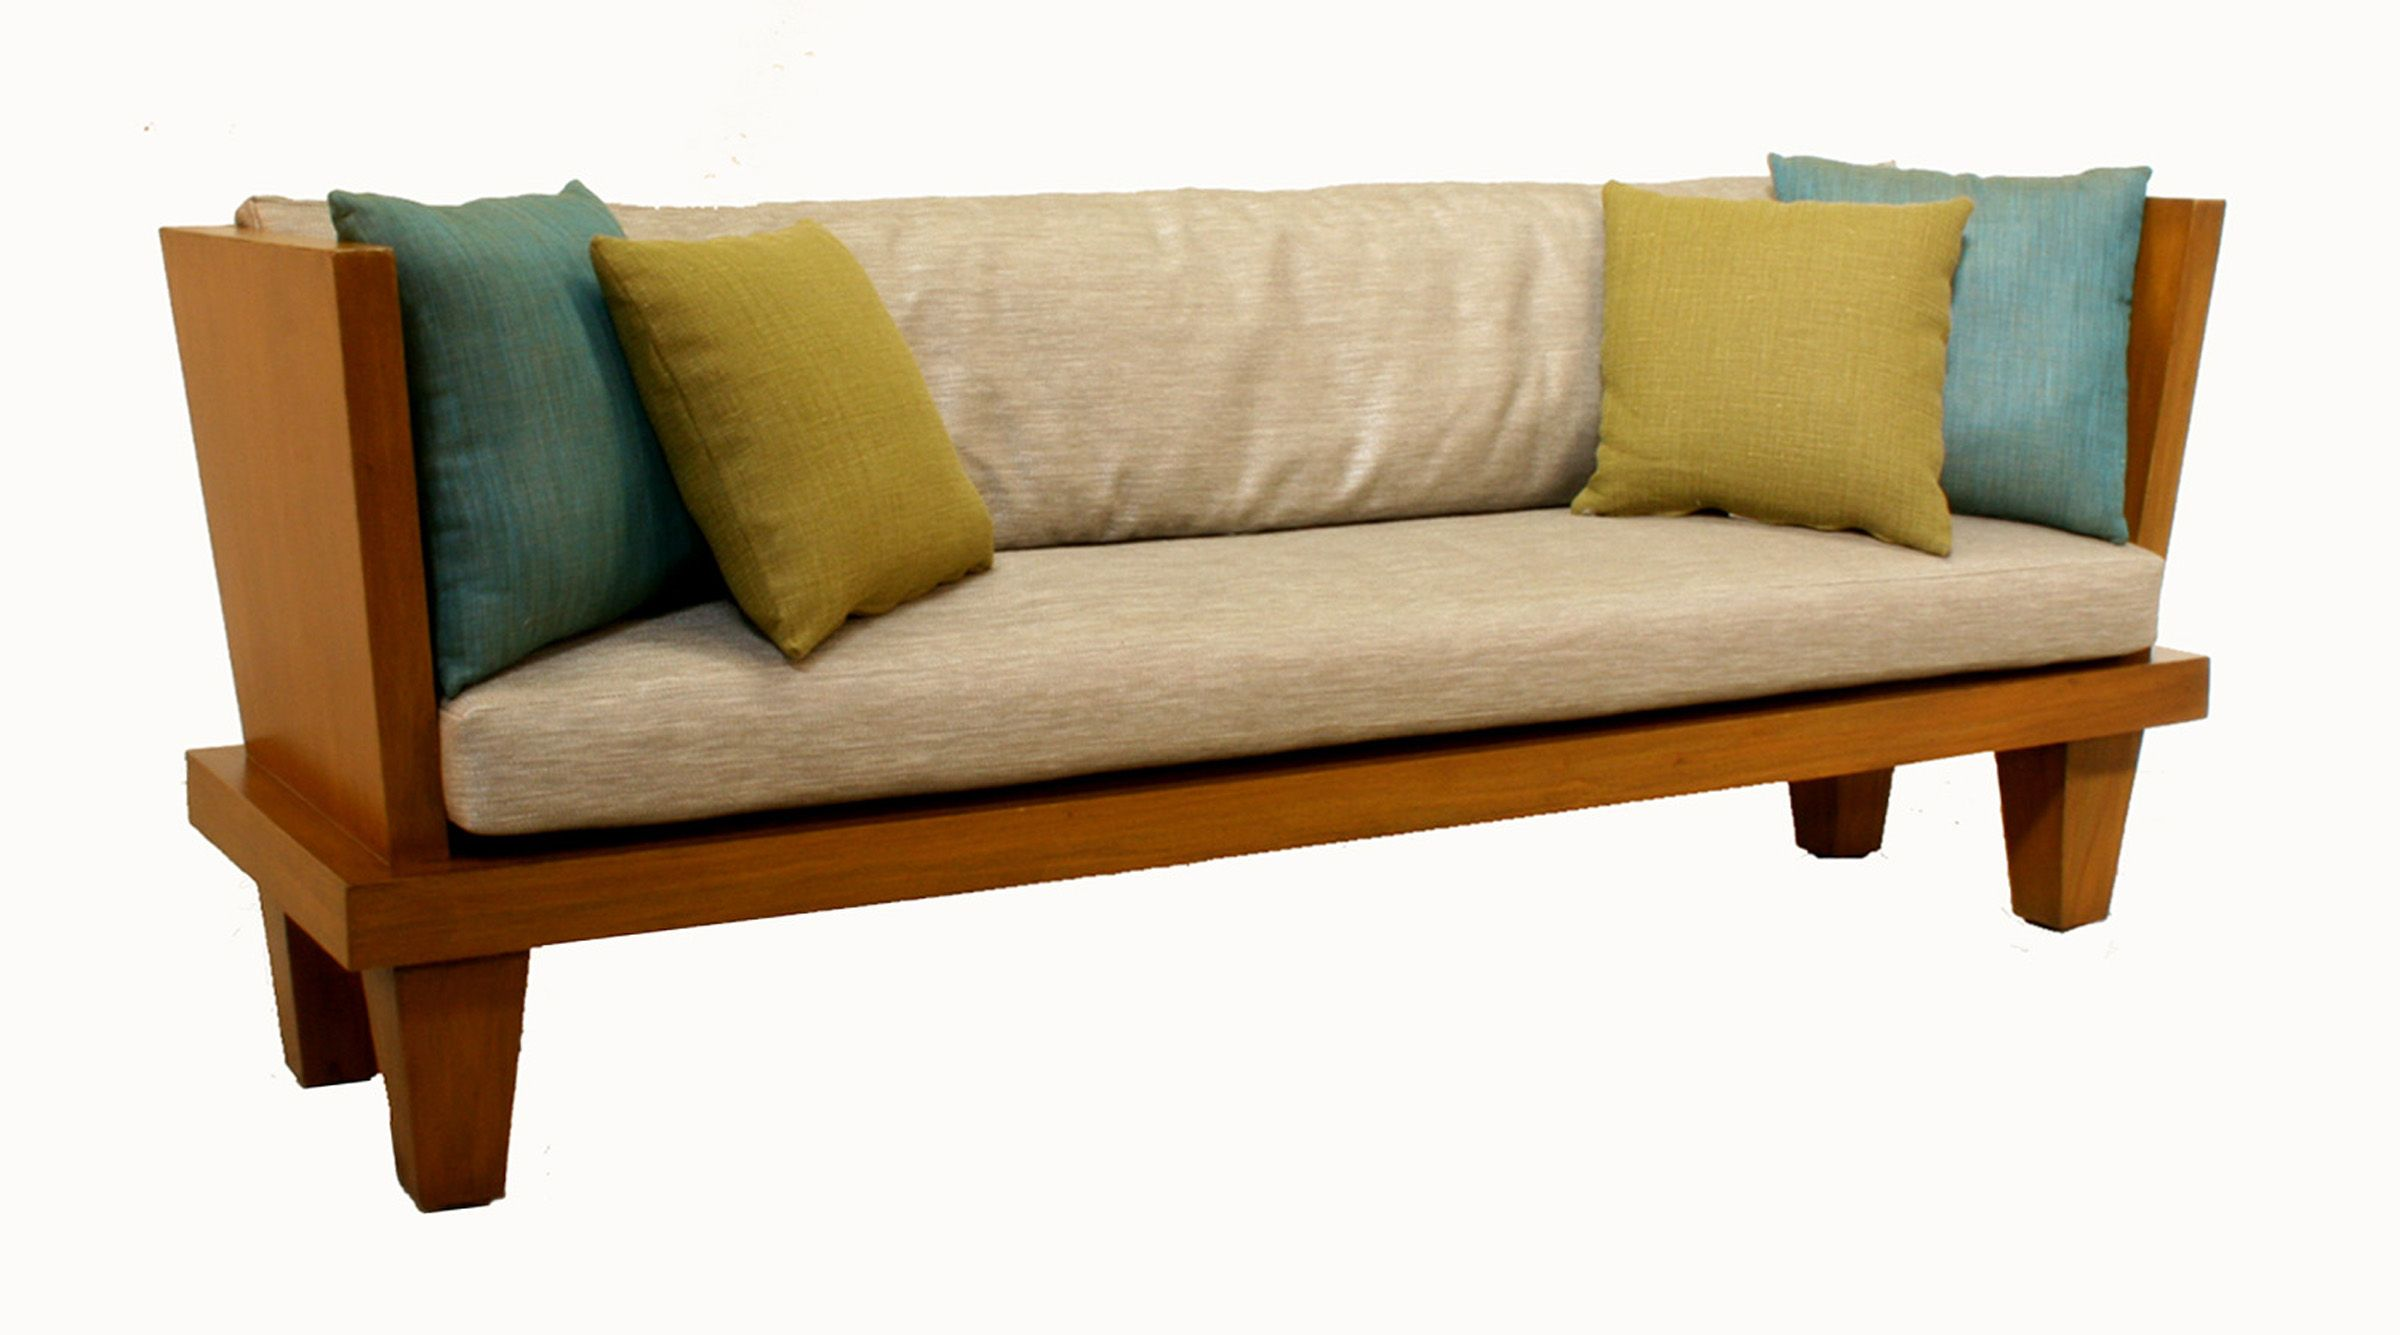 Fb 5897 1 Bench Wooden Bench Indoor Wooden Benches For Sale Furniture